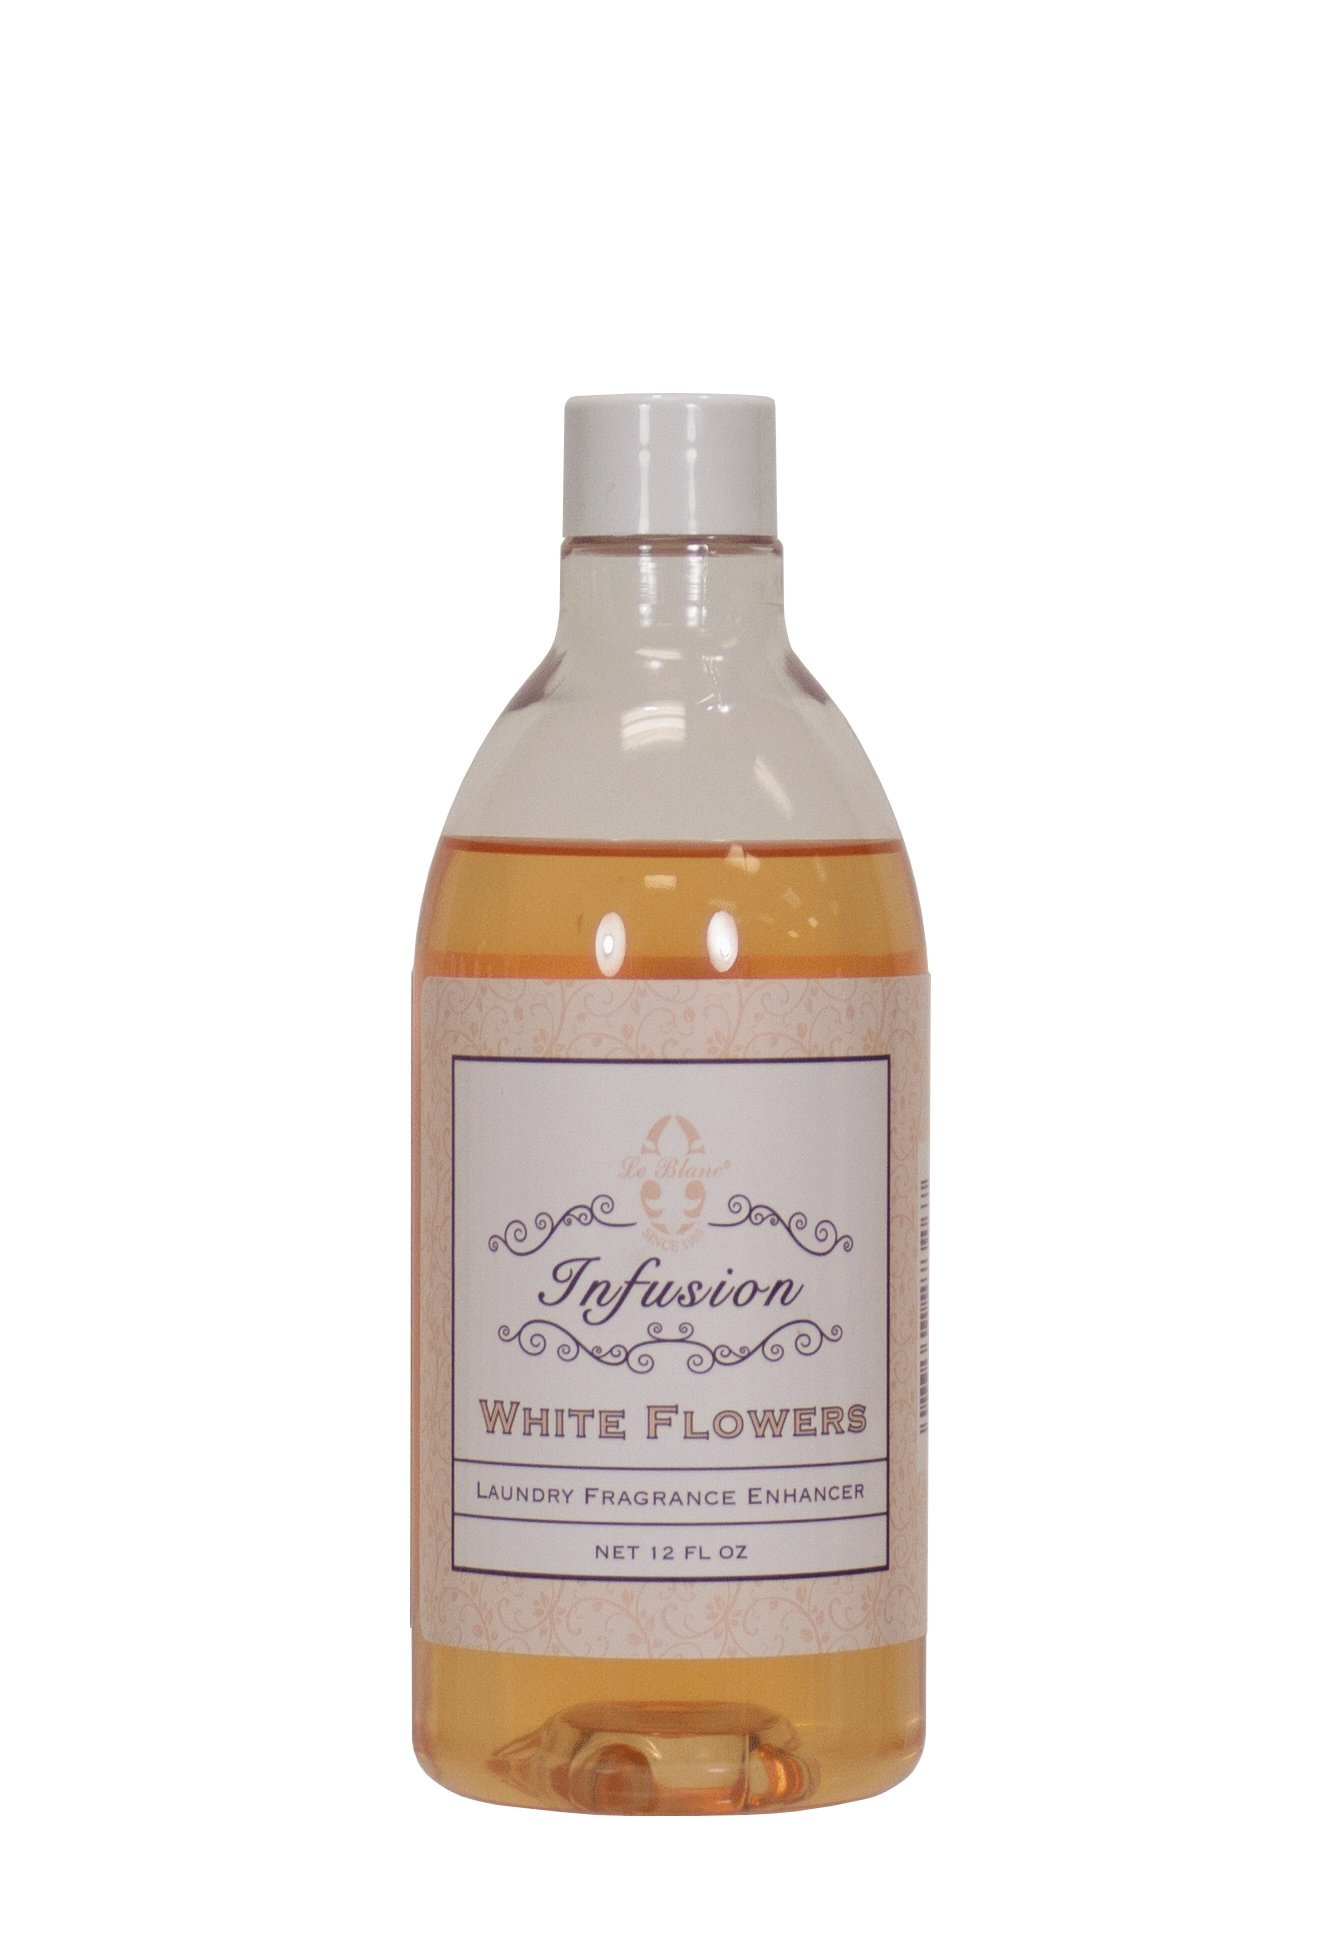 Le Blanc® White Flowers Fragrance Infusion - 12 FL. OZ., 8 Pack by Le Blanc